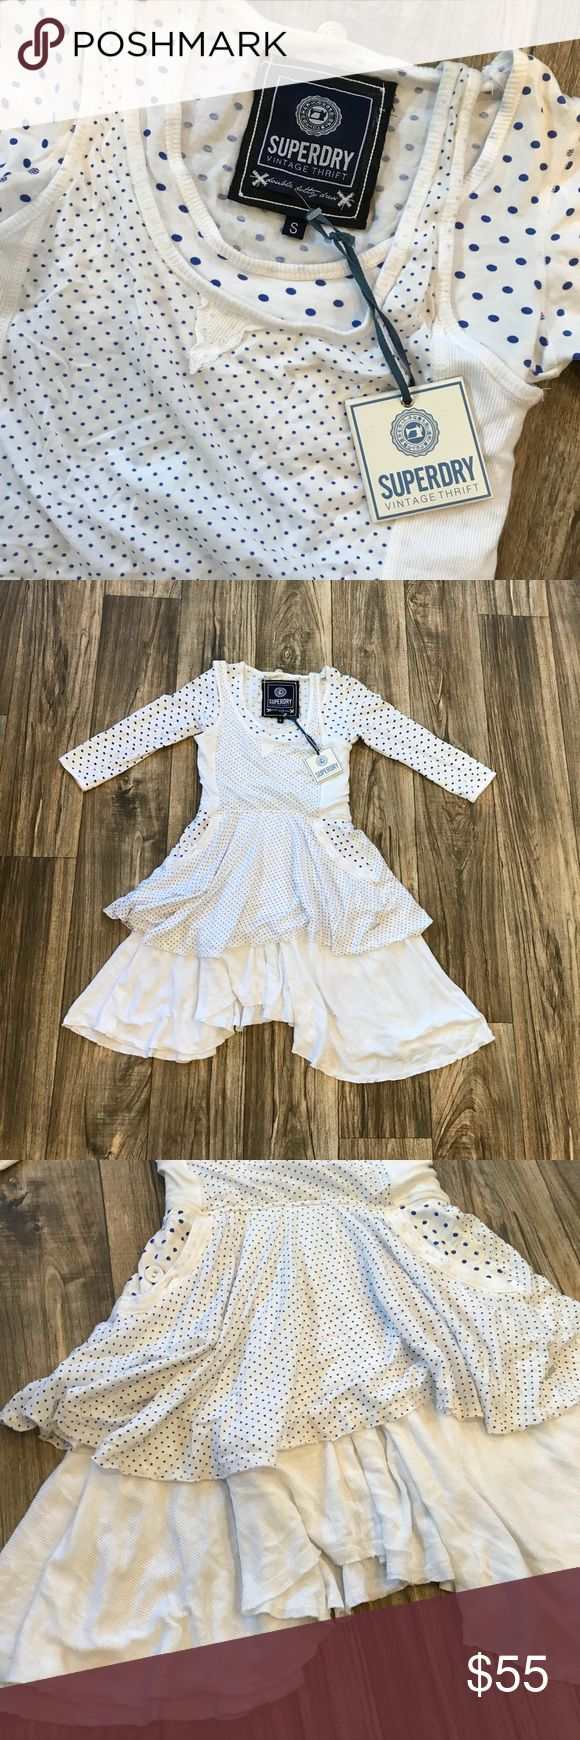 Super dry dress NWT supper dry vintage .dress so cute white with polka dots apron like style on front with pockets . The skirt is longer on either side shorter in the middle for sorta a boho look no flaws super cute for spring Superdry Dresses